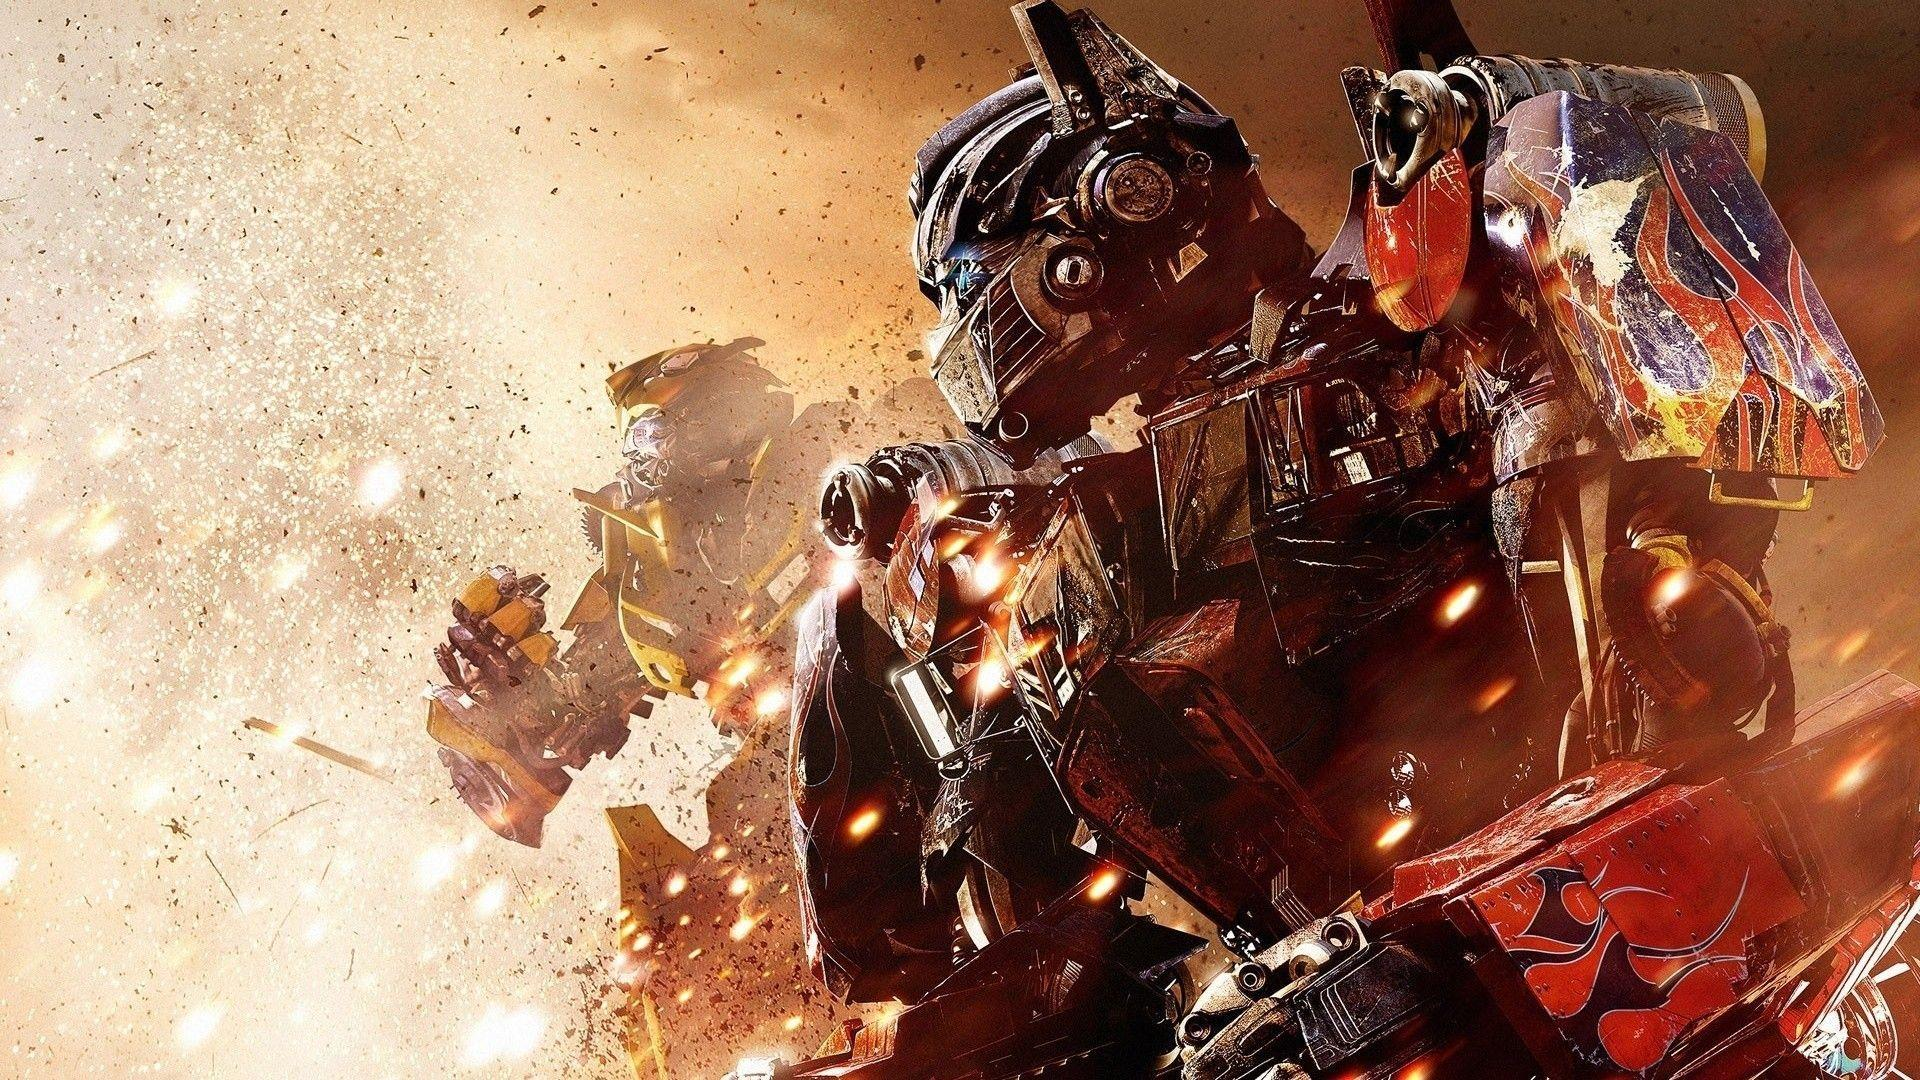 Transformers Fall Of Cybertron 4k Wallpaper Optimus Prime Hd Wallpapers Wallpaper Cave